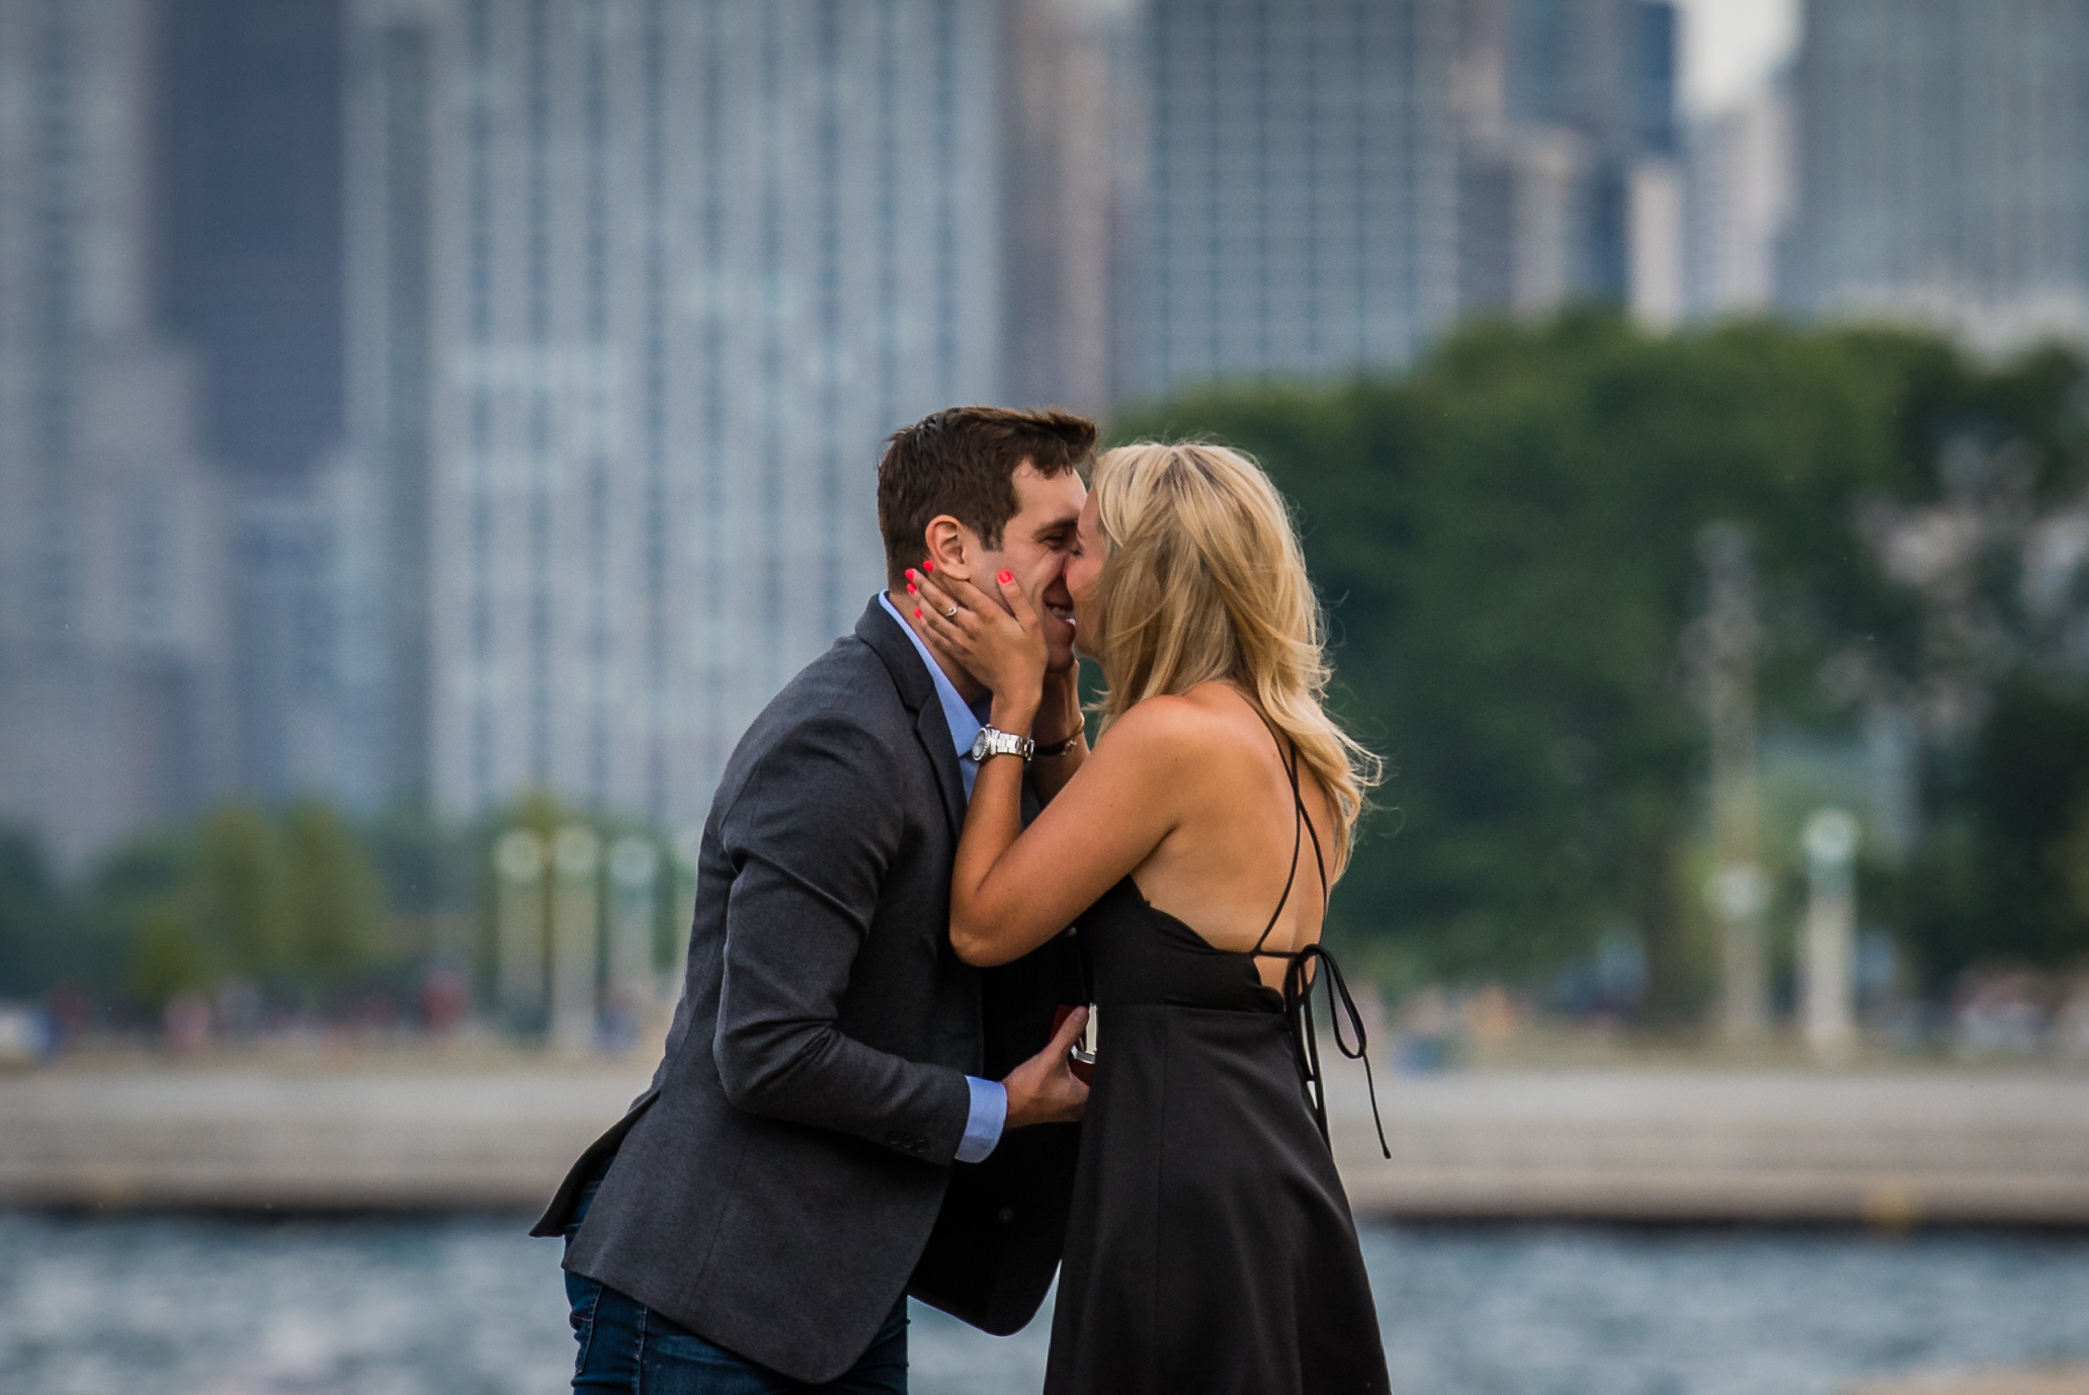 heather hackney photography chicago www.heatherhackney.com chicago engagement chicago sunset proposal diversy harbor chicago--5.jpg